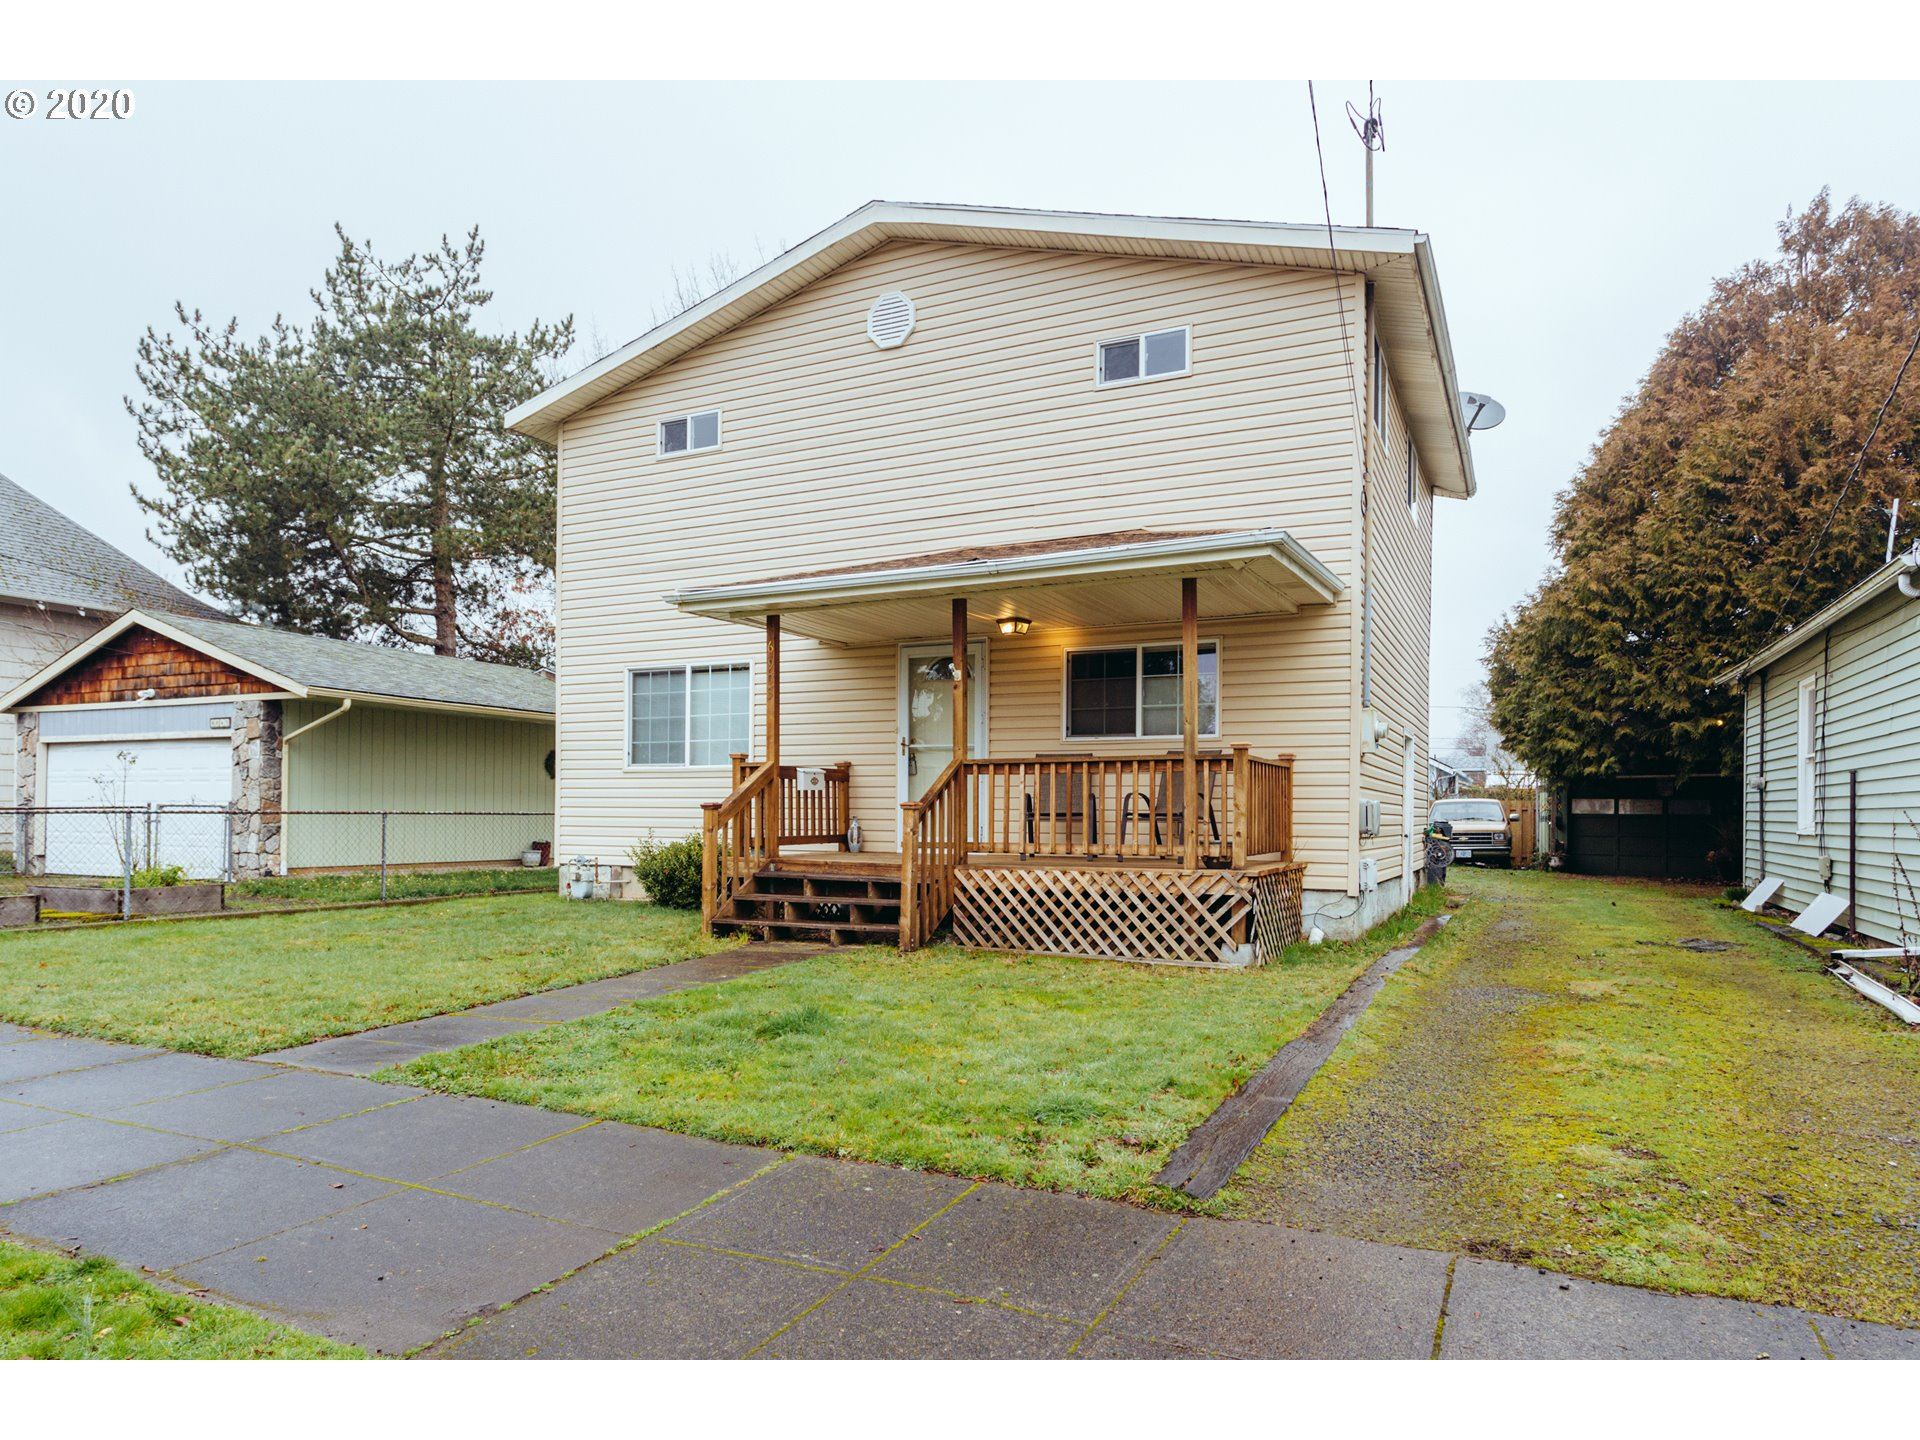 6903 SE CORA ST, Portland, OR 97206 - MLS#: 20333808